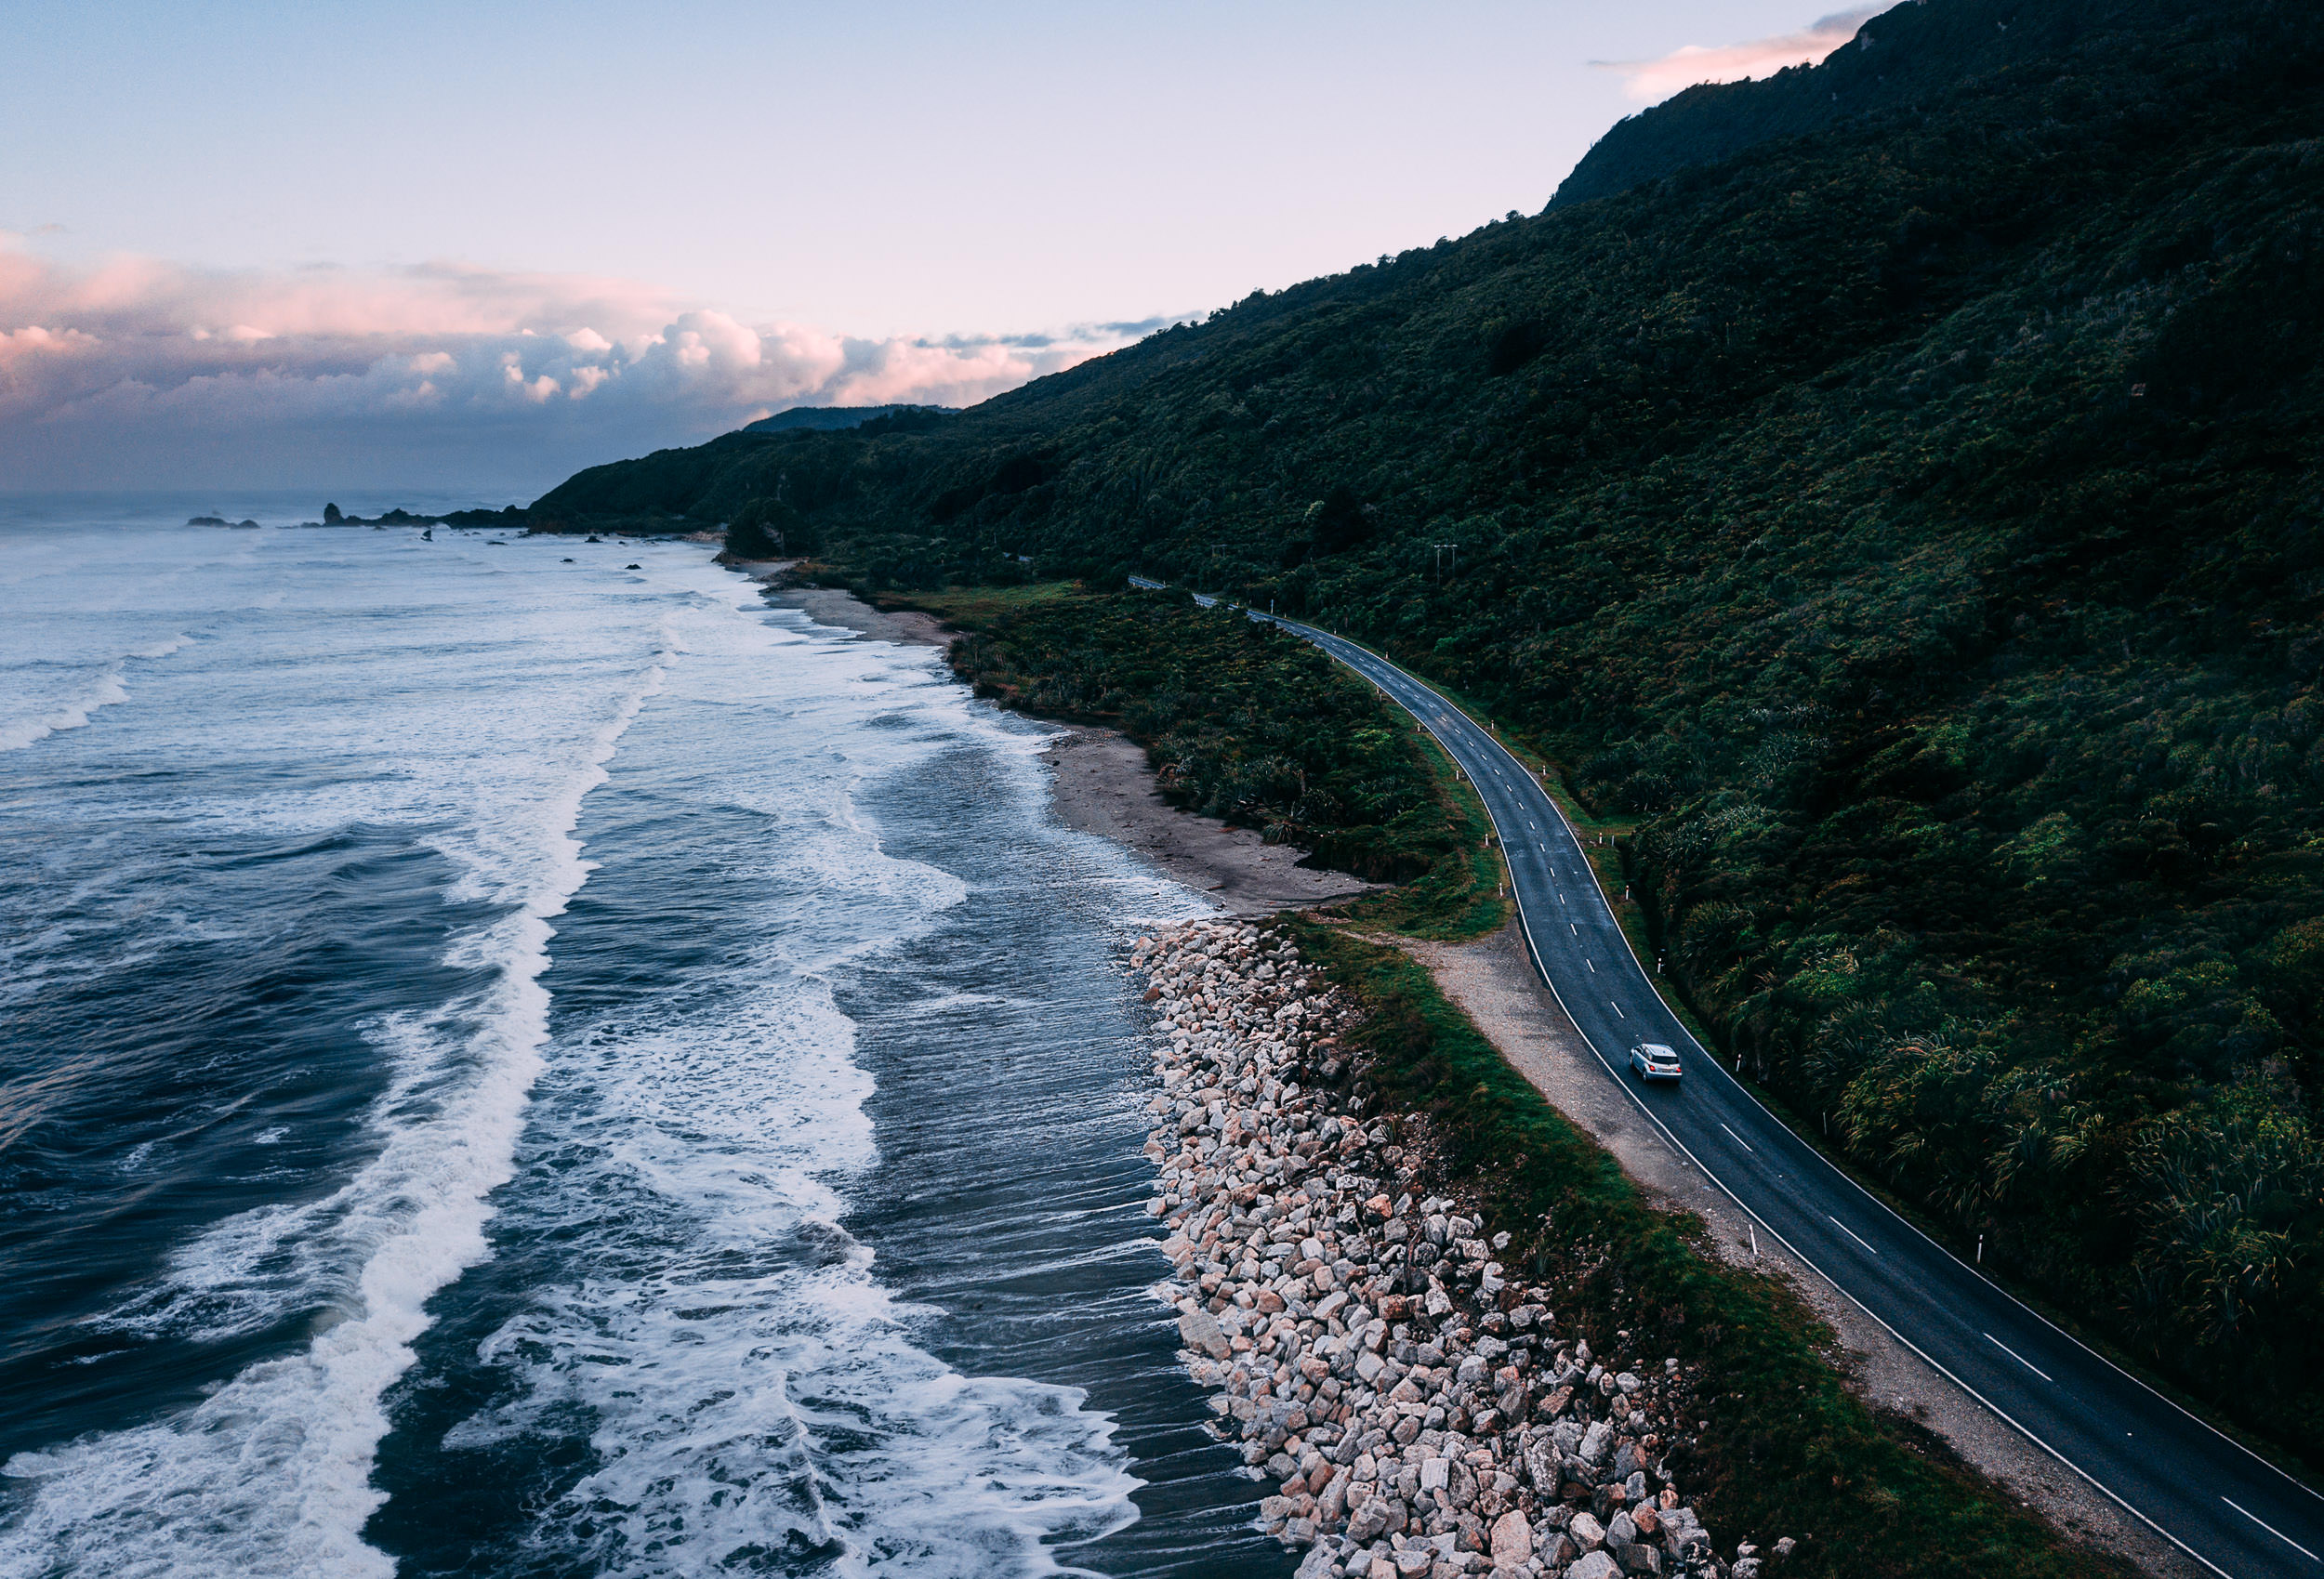 2018.03.14_NZ_Punakaiki_Mavic-0828-1 copy-1 copy.jpg